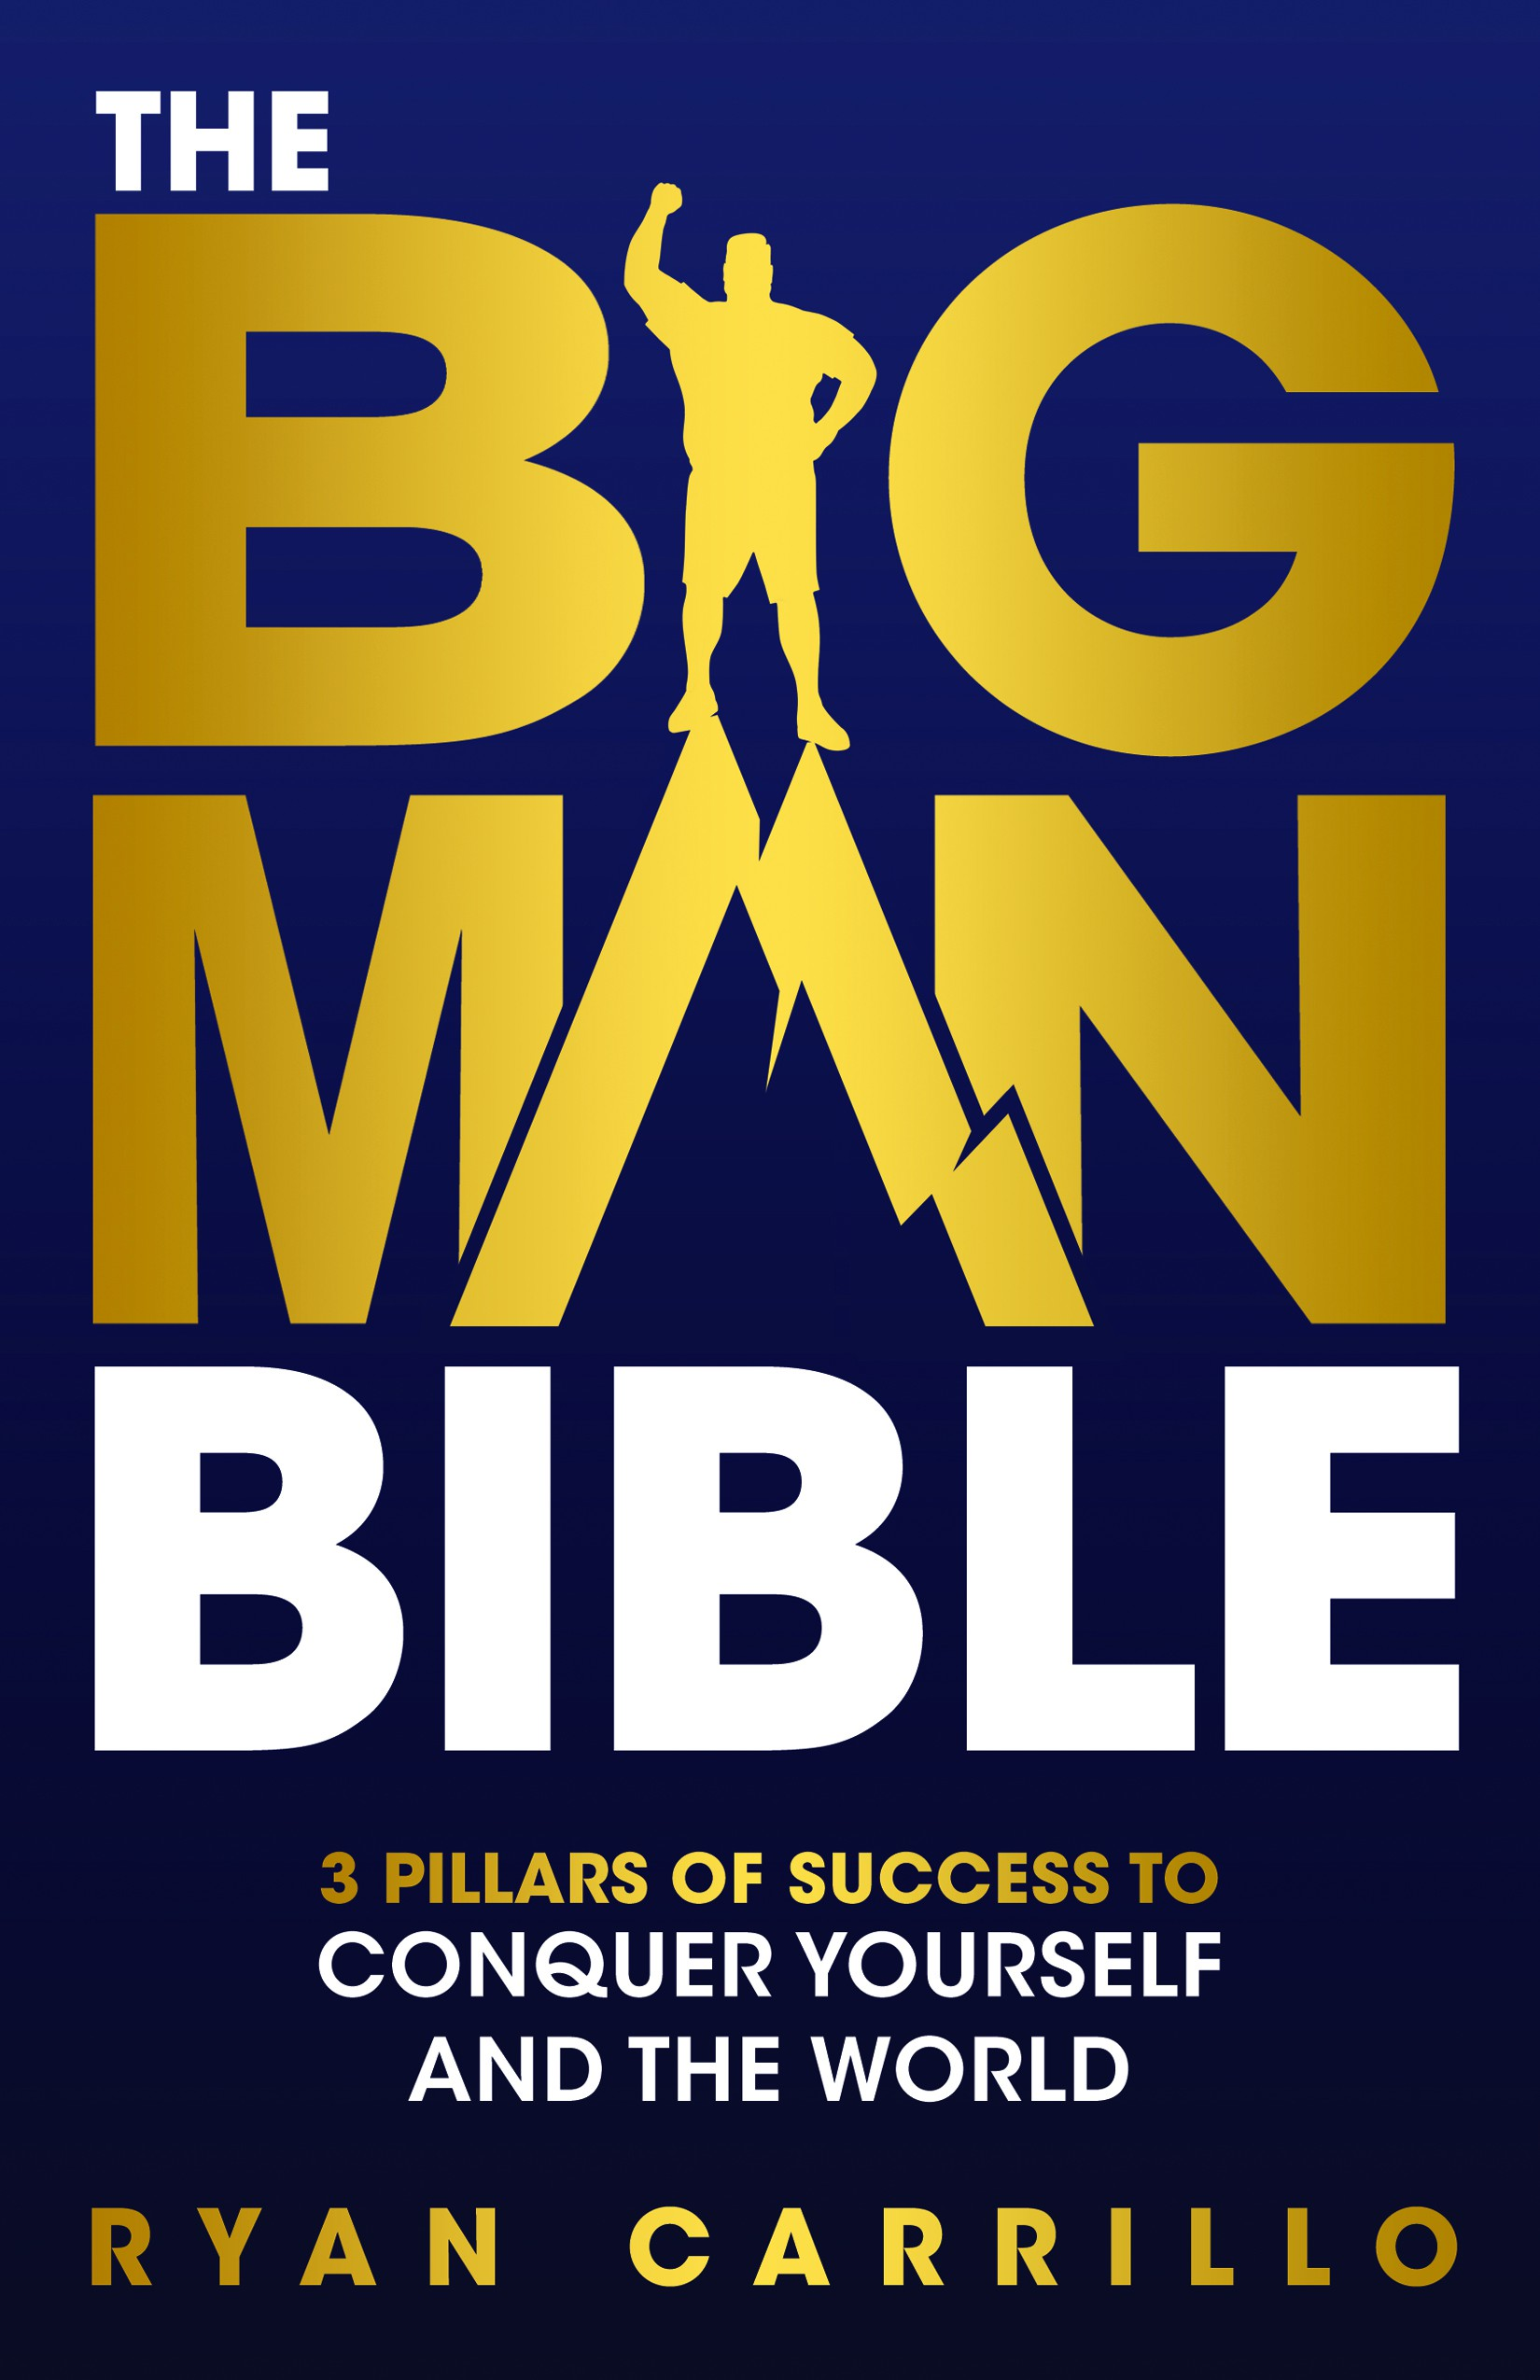 The Big Man Bible Book Cover - Design a life changing book cover for the man in your life